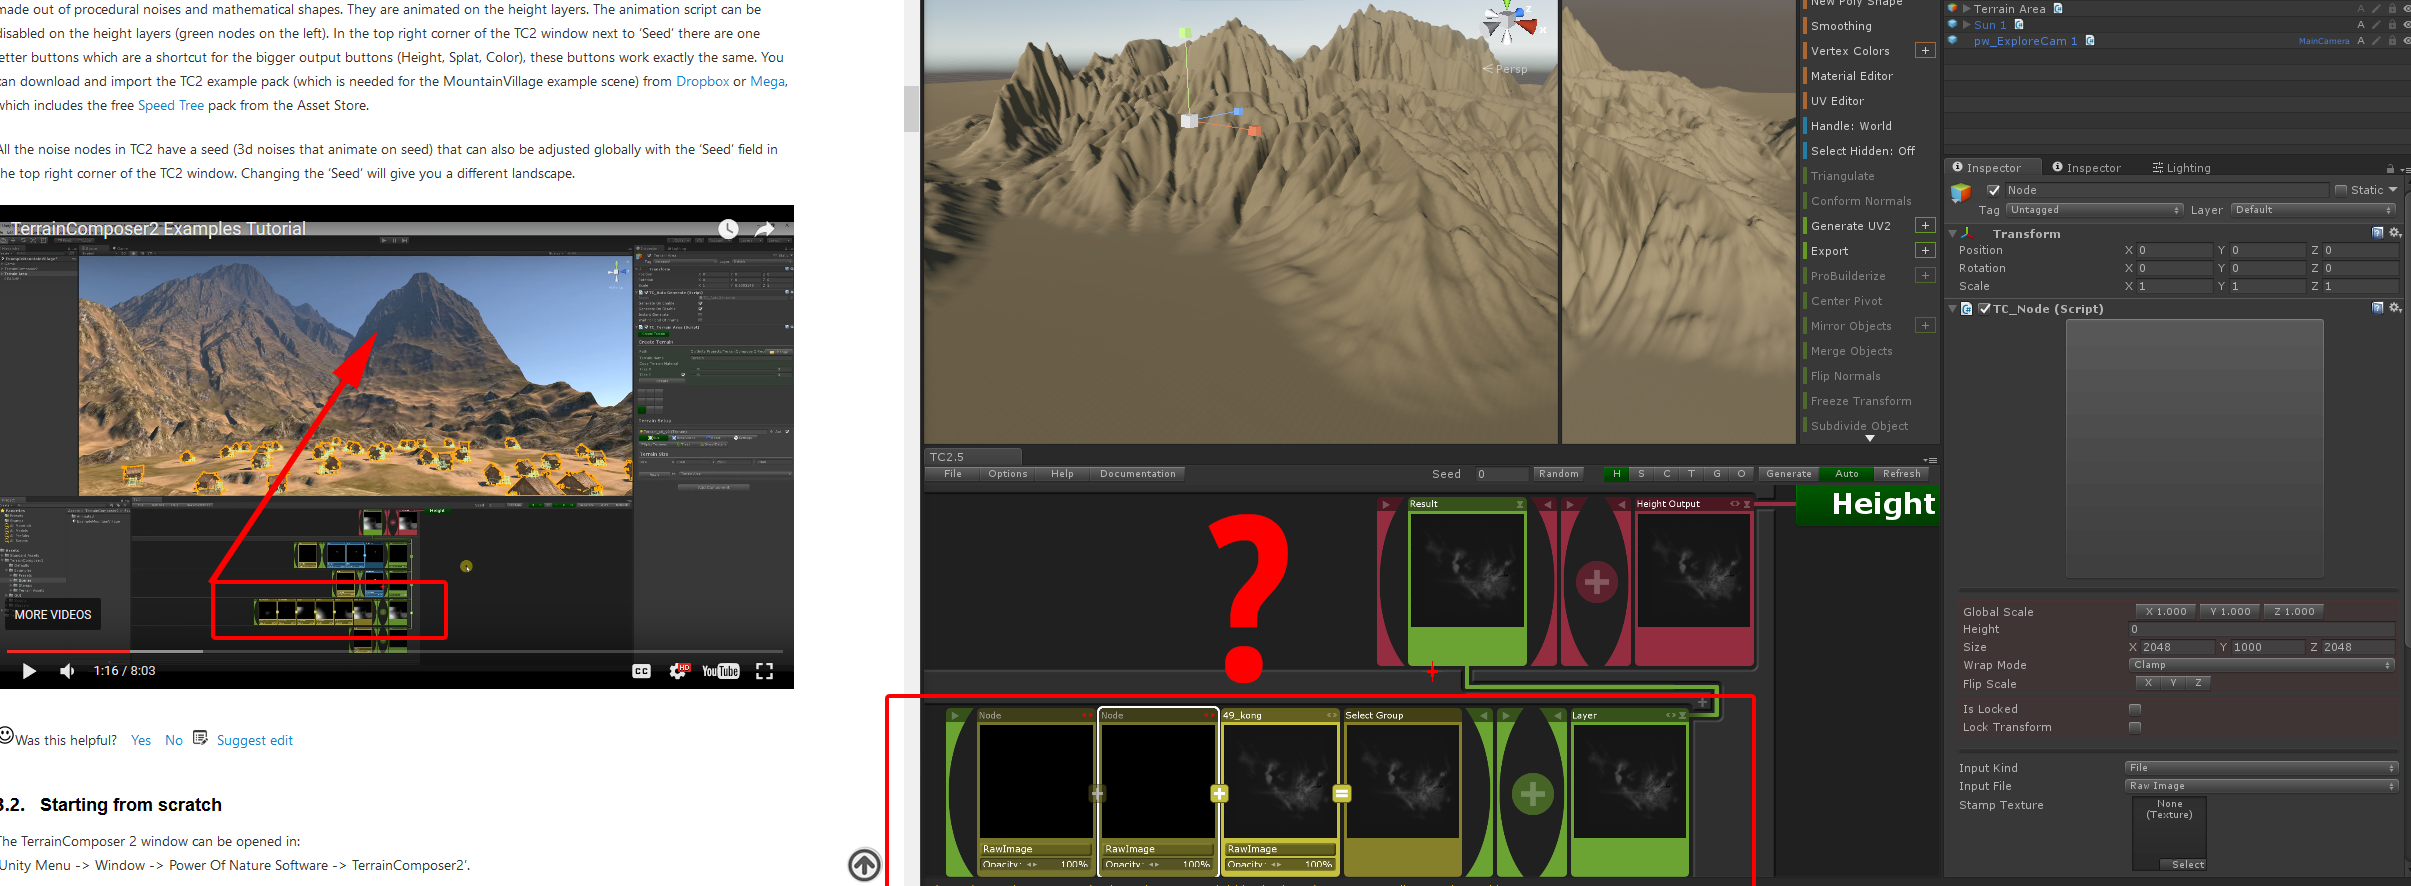 Terrain Composer2 a next generation GPU powered terrain tool